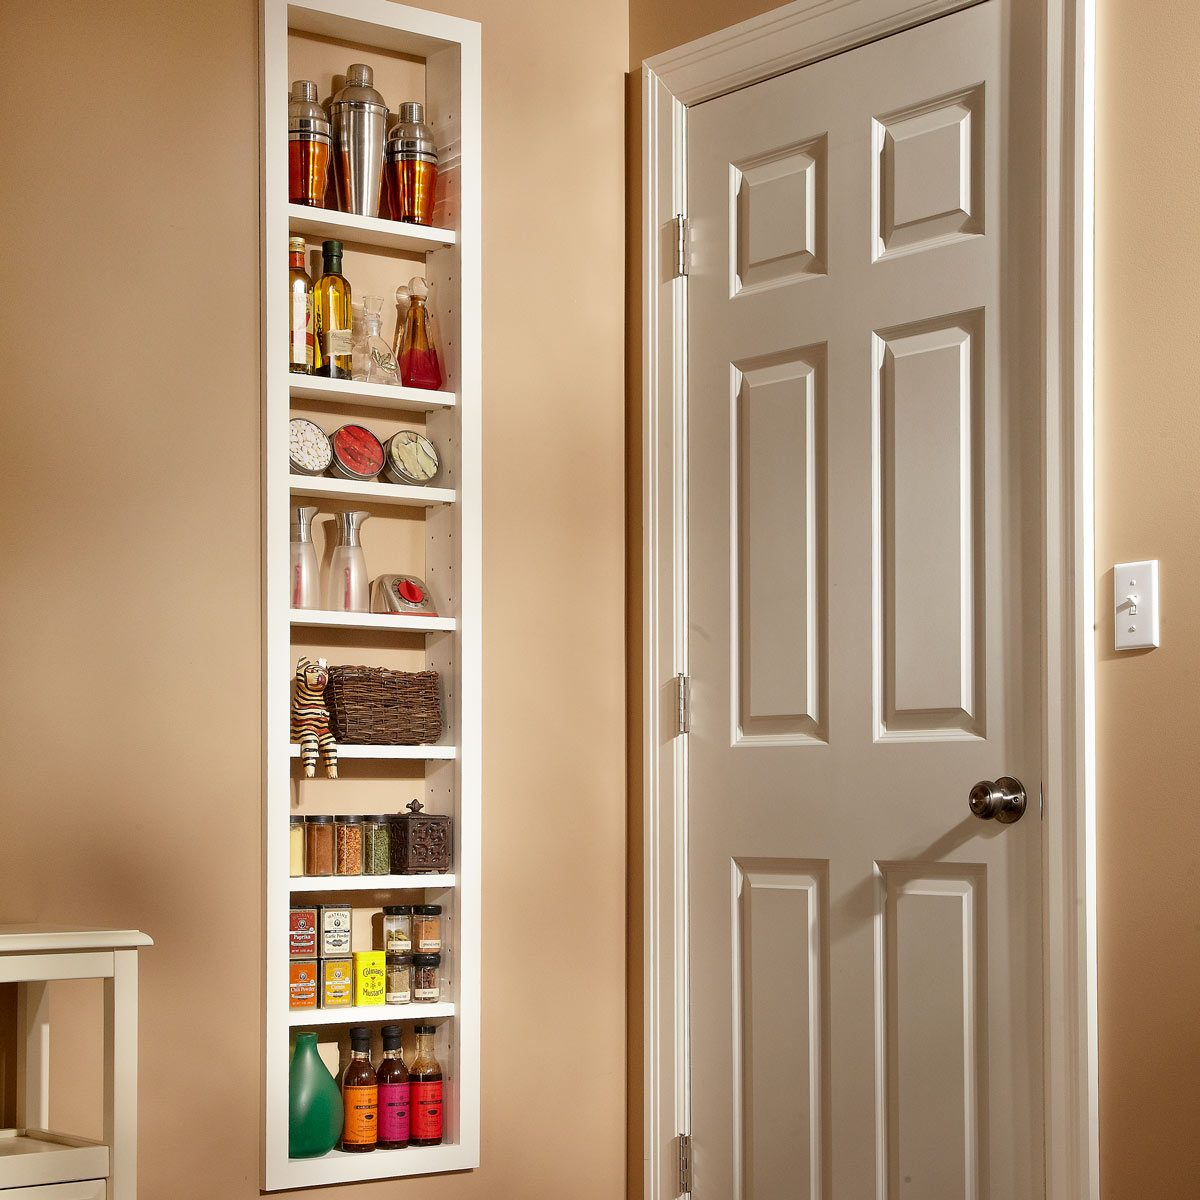 How To Make Your Own Built In Shelves